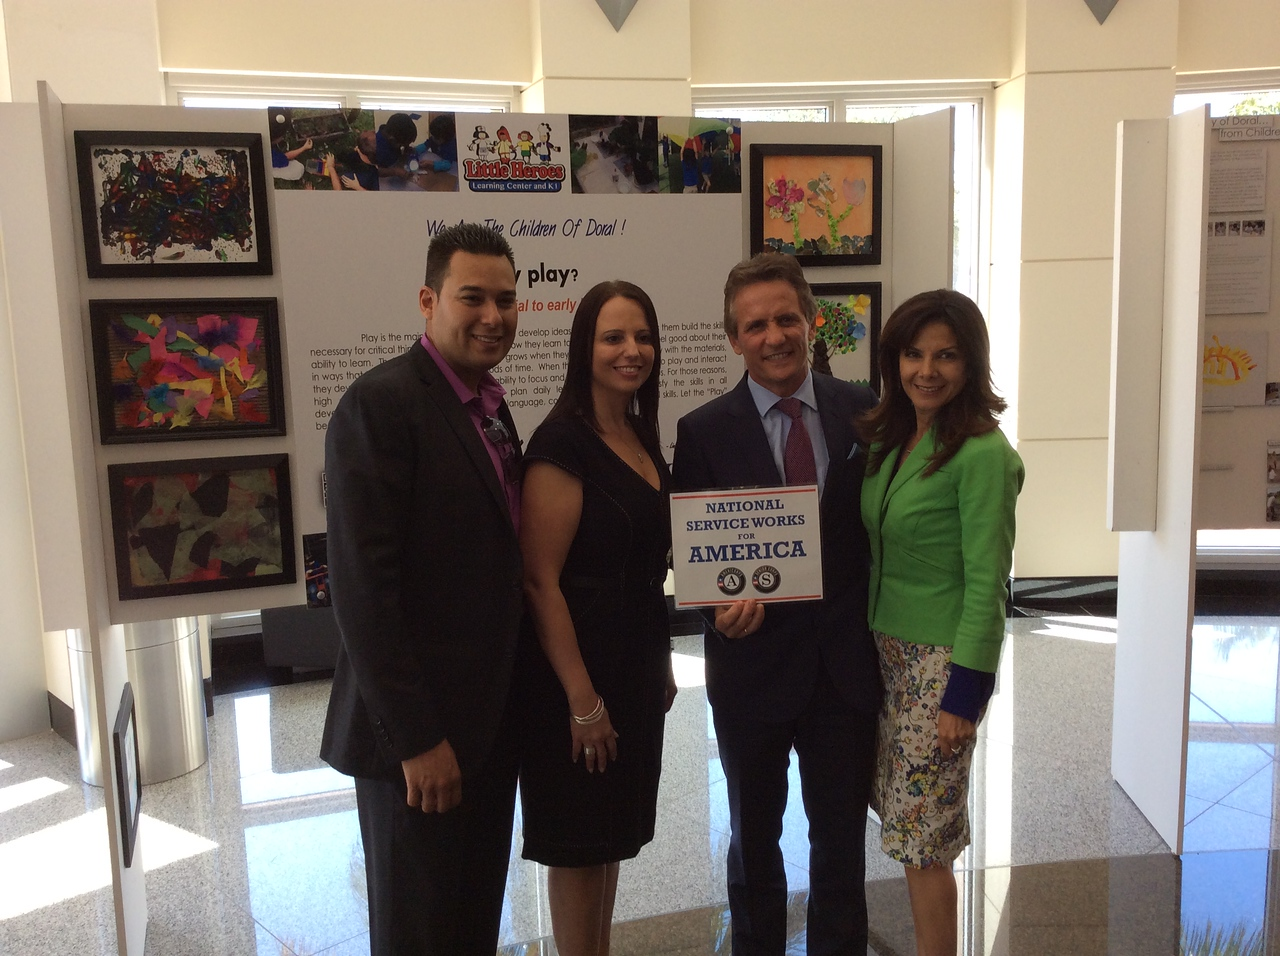 Mayor Luigi Boria and staff participating in Mayors Day of Recognition for National Service in Doral, FL on April 1, 2014. Corporation for National and Community Service Photo.